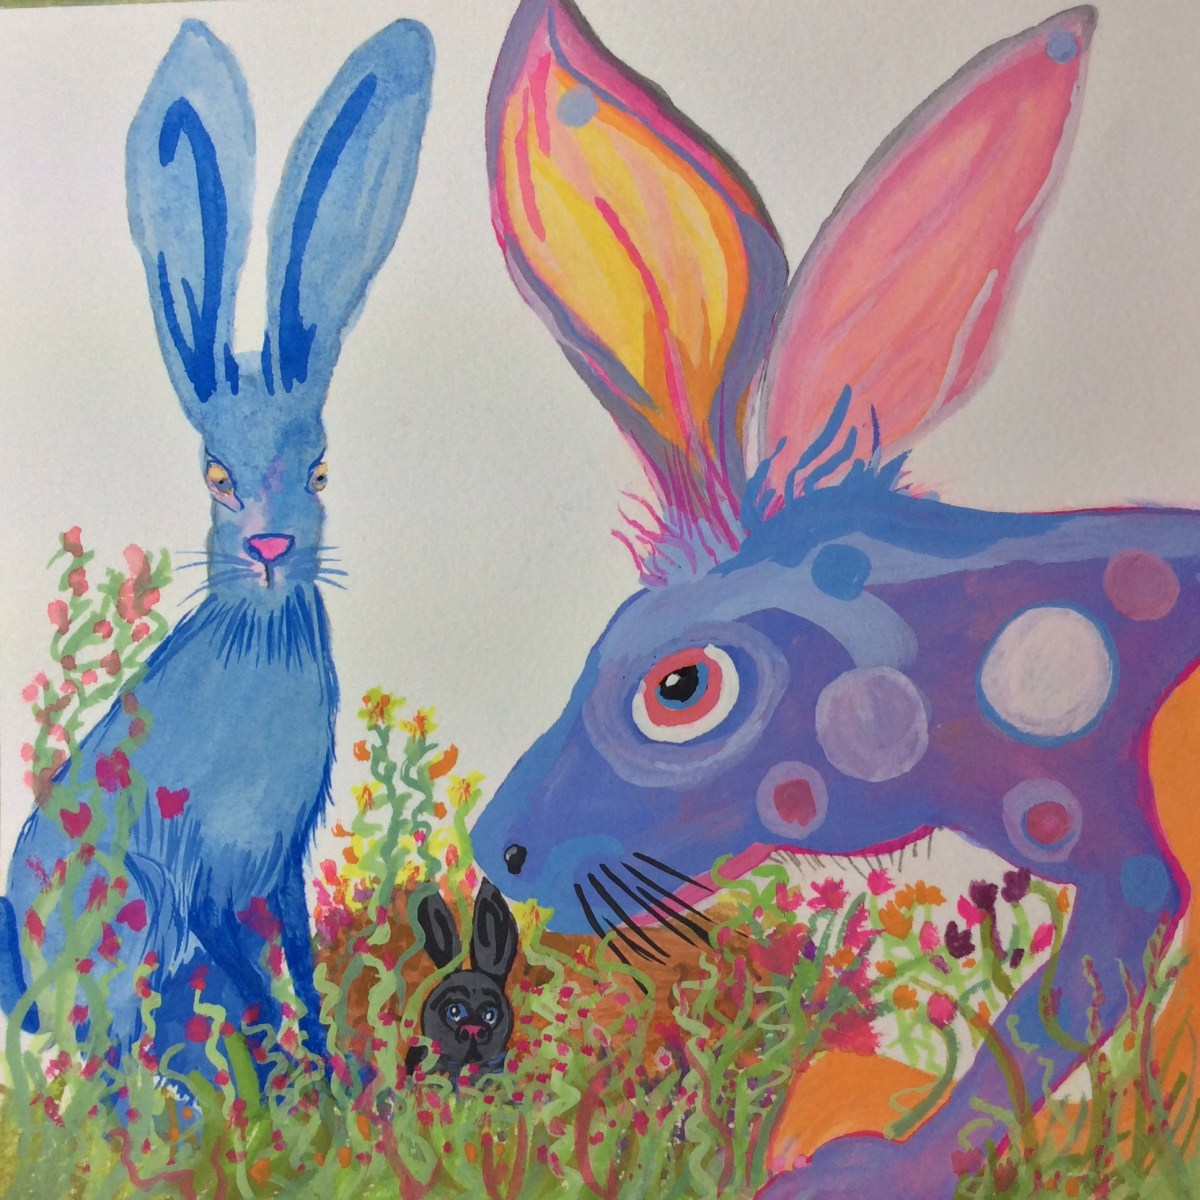 Painting Animals My Way ~ Shameless Promotion!